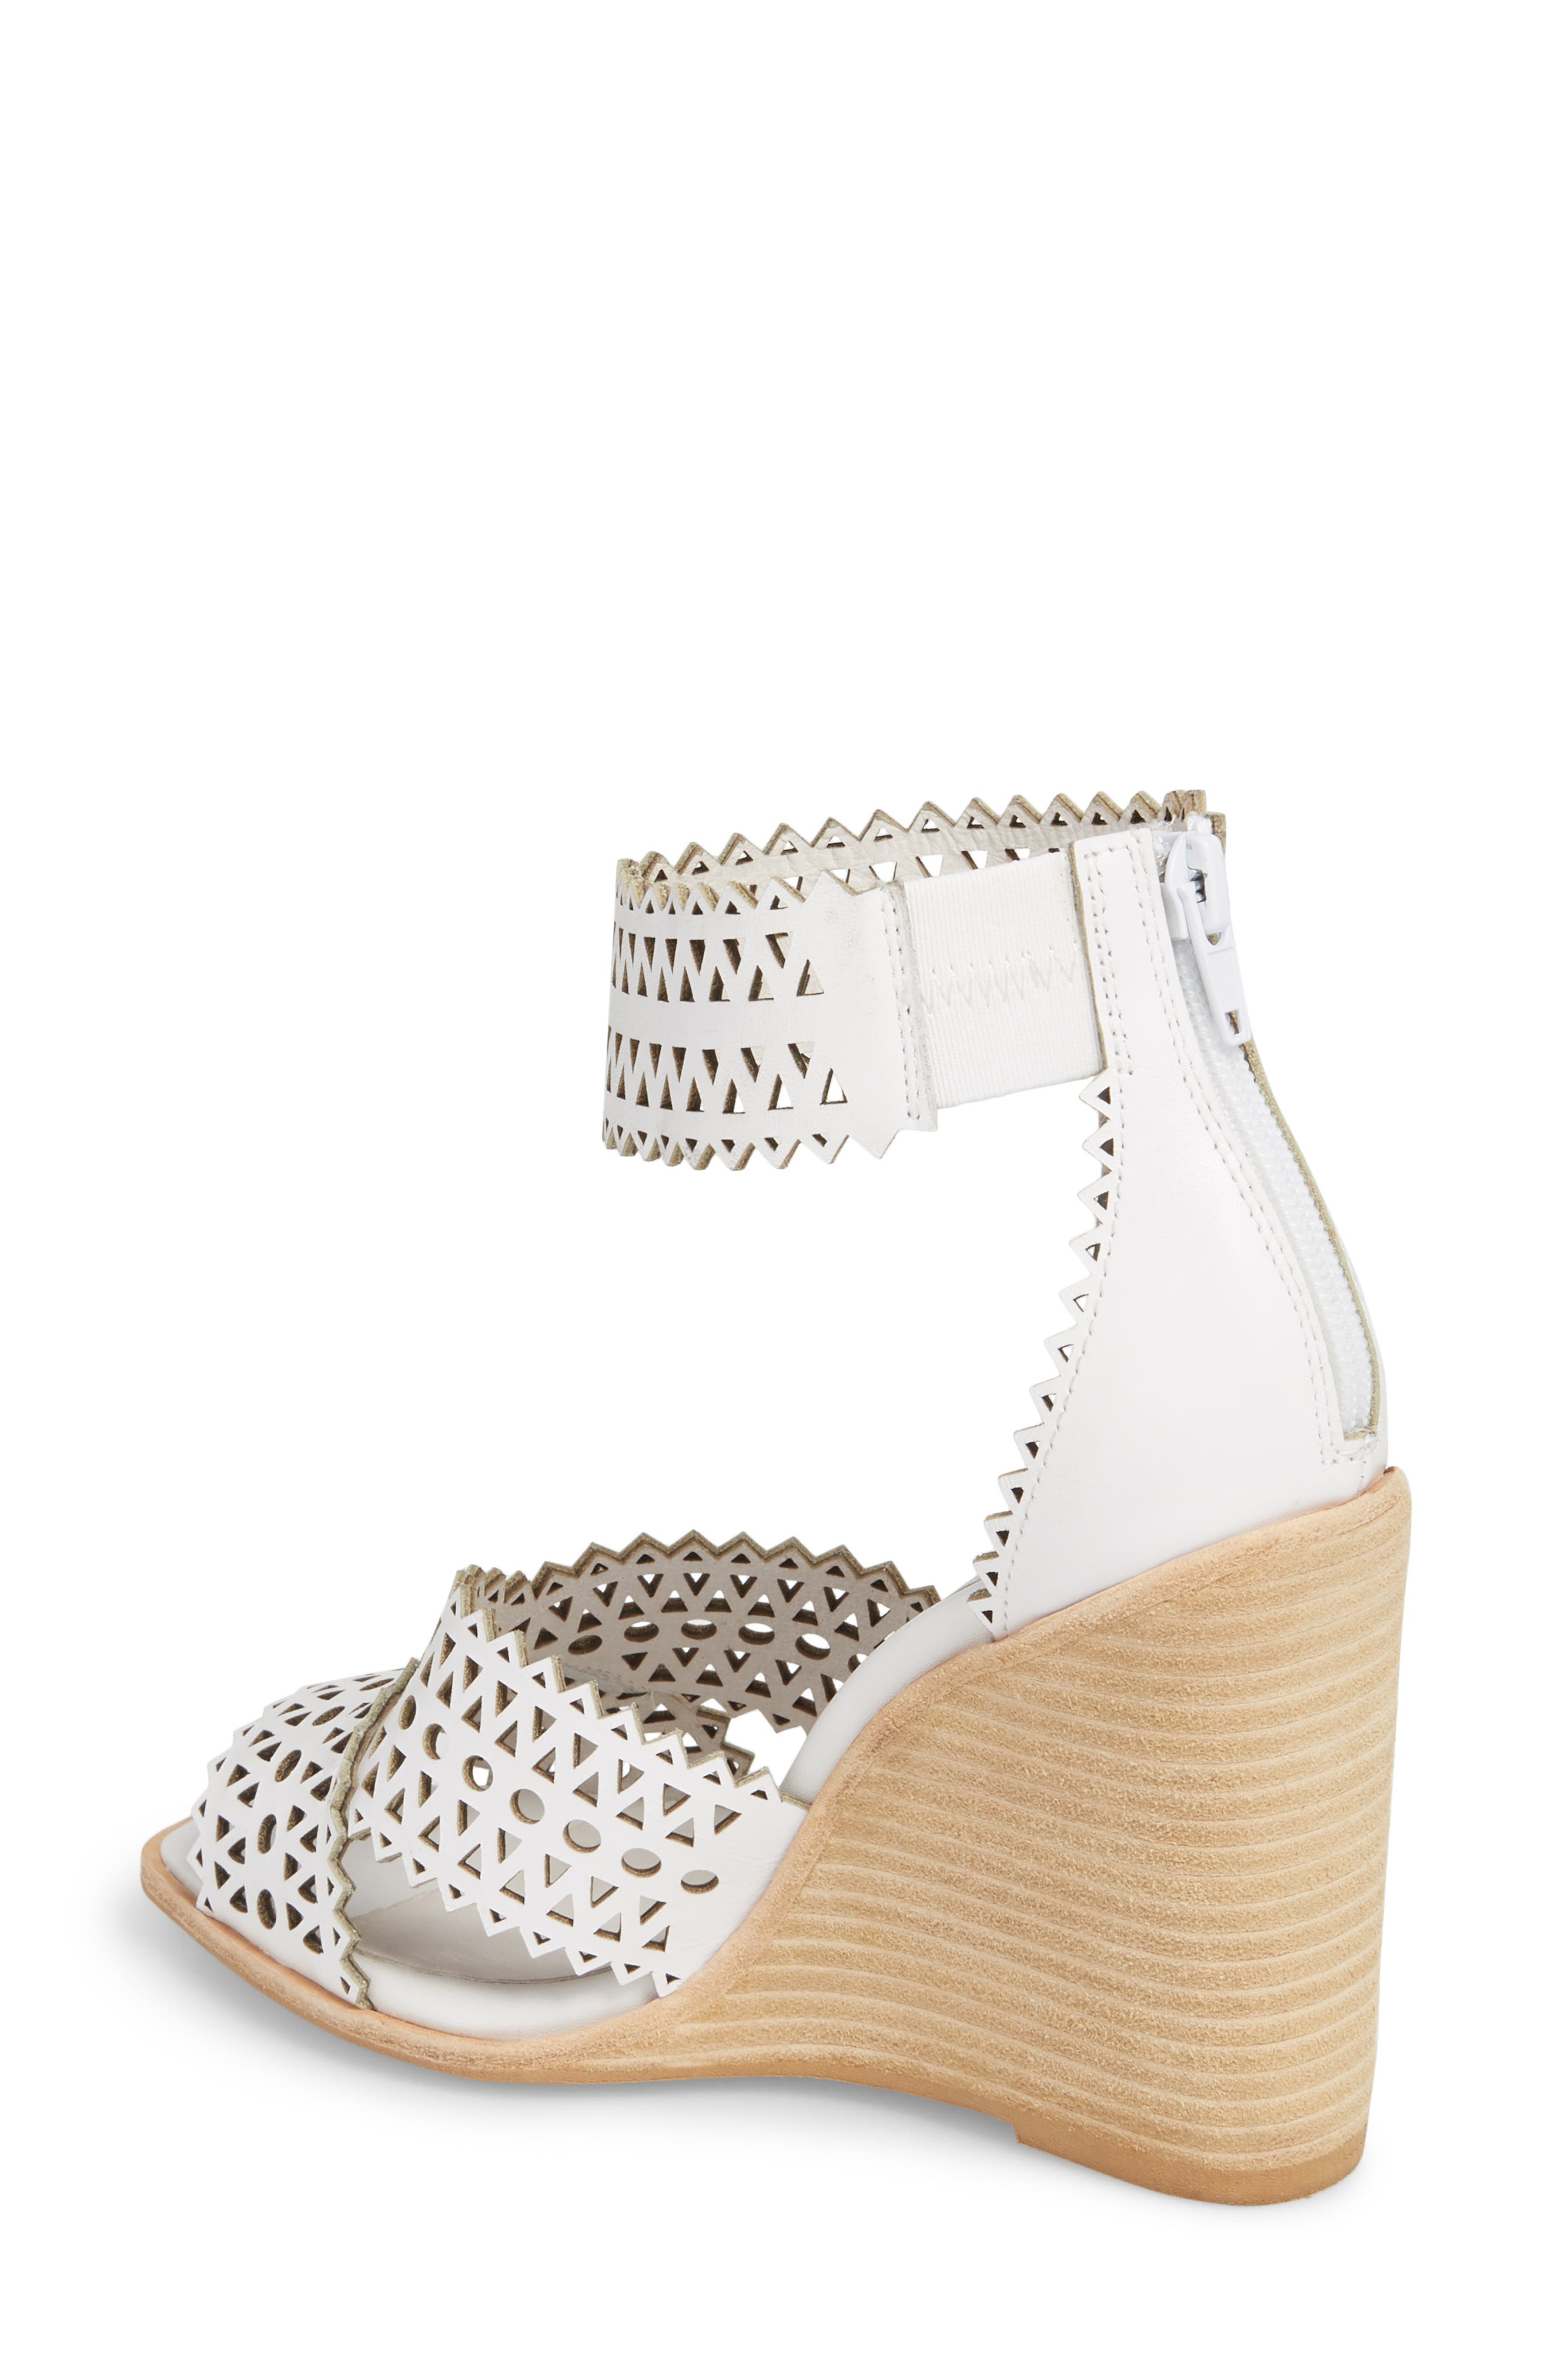 Besante Perforated Wedge Sandal,                             Alternate thumbnail 2, color,                             White